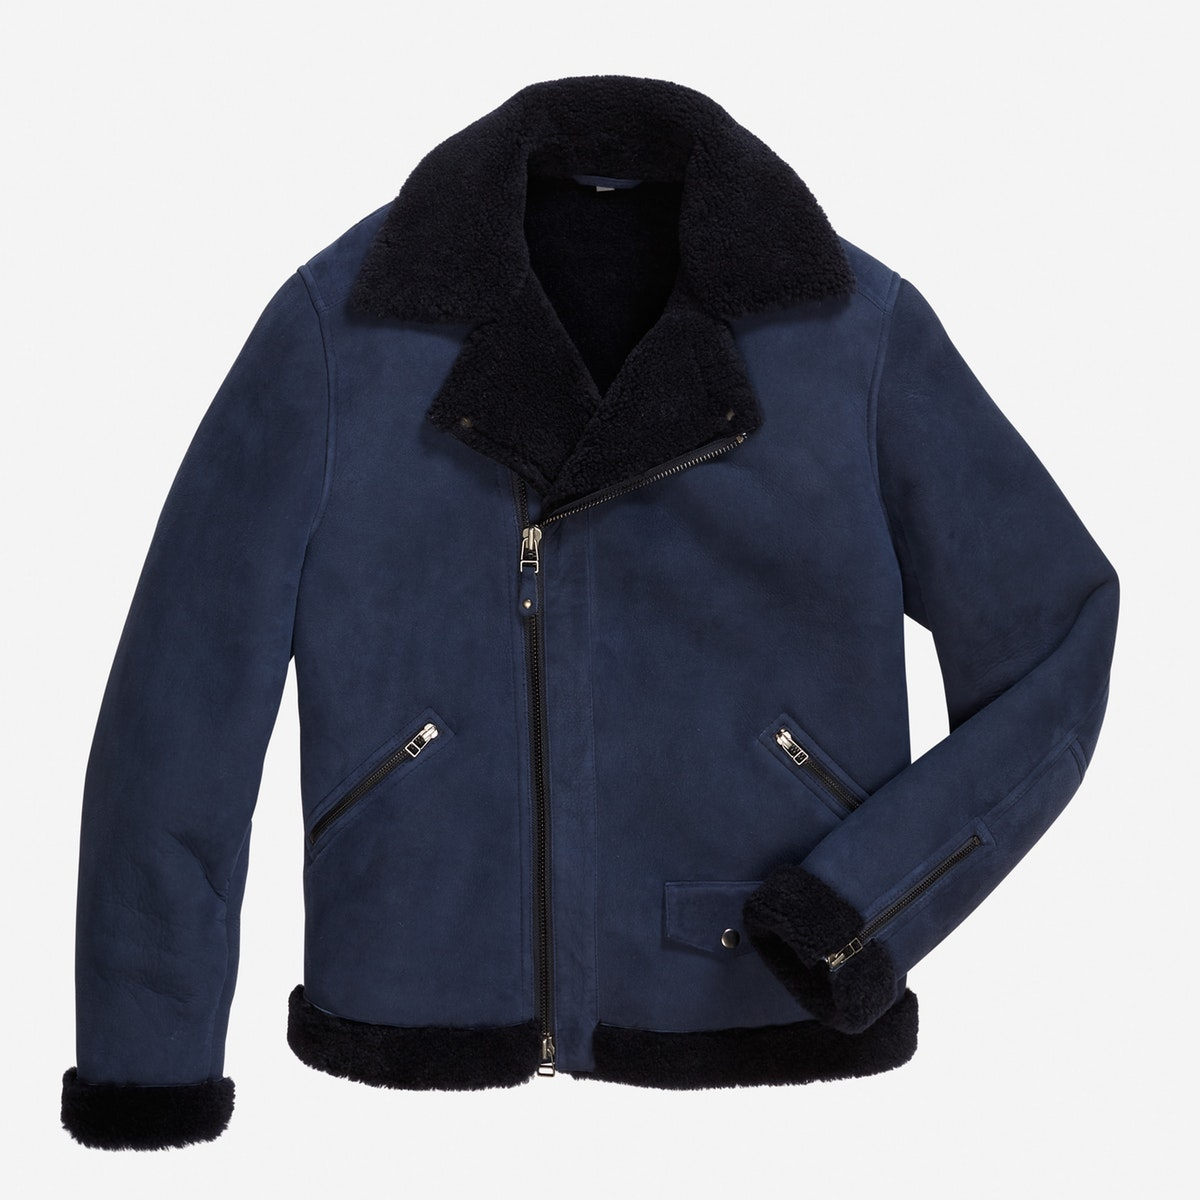 The Shearling Leather Bomber Jacket | Bonobos